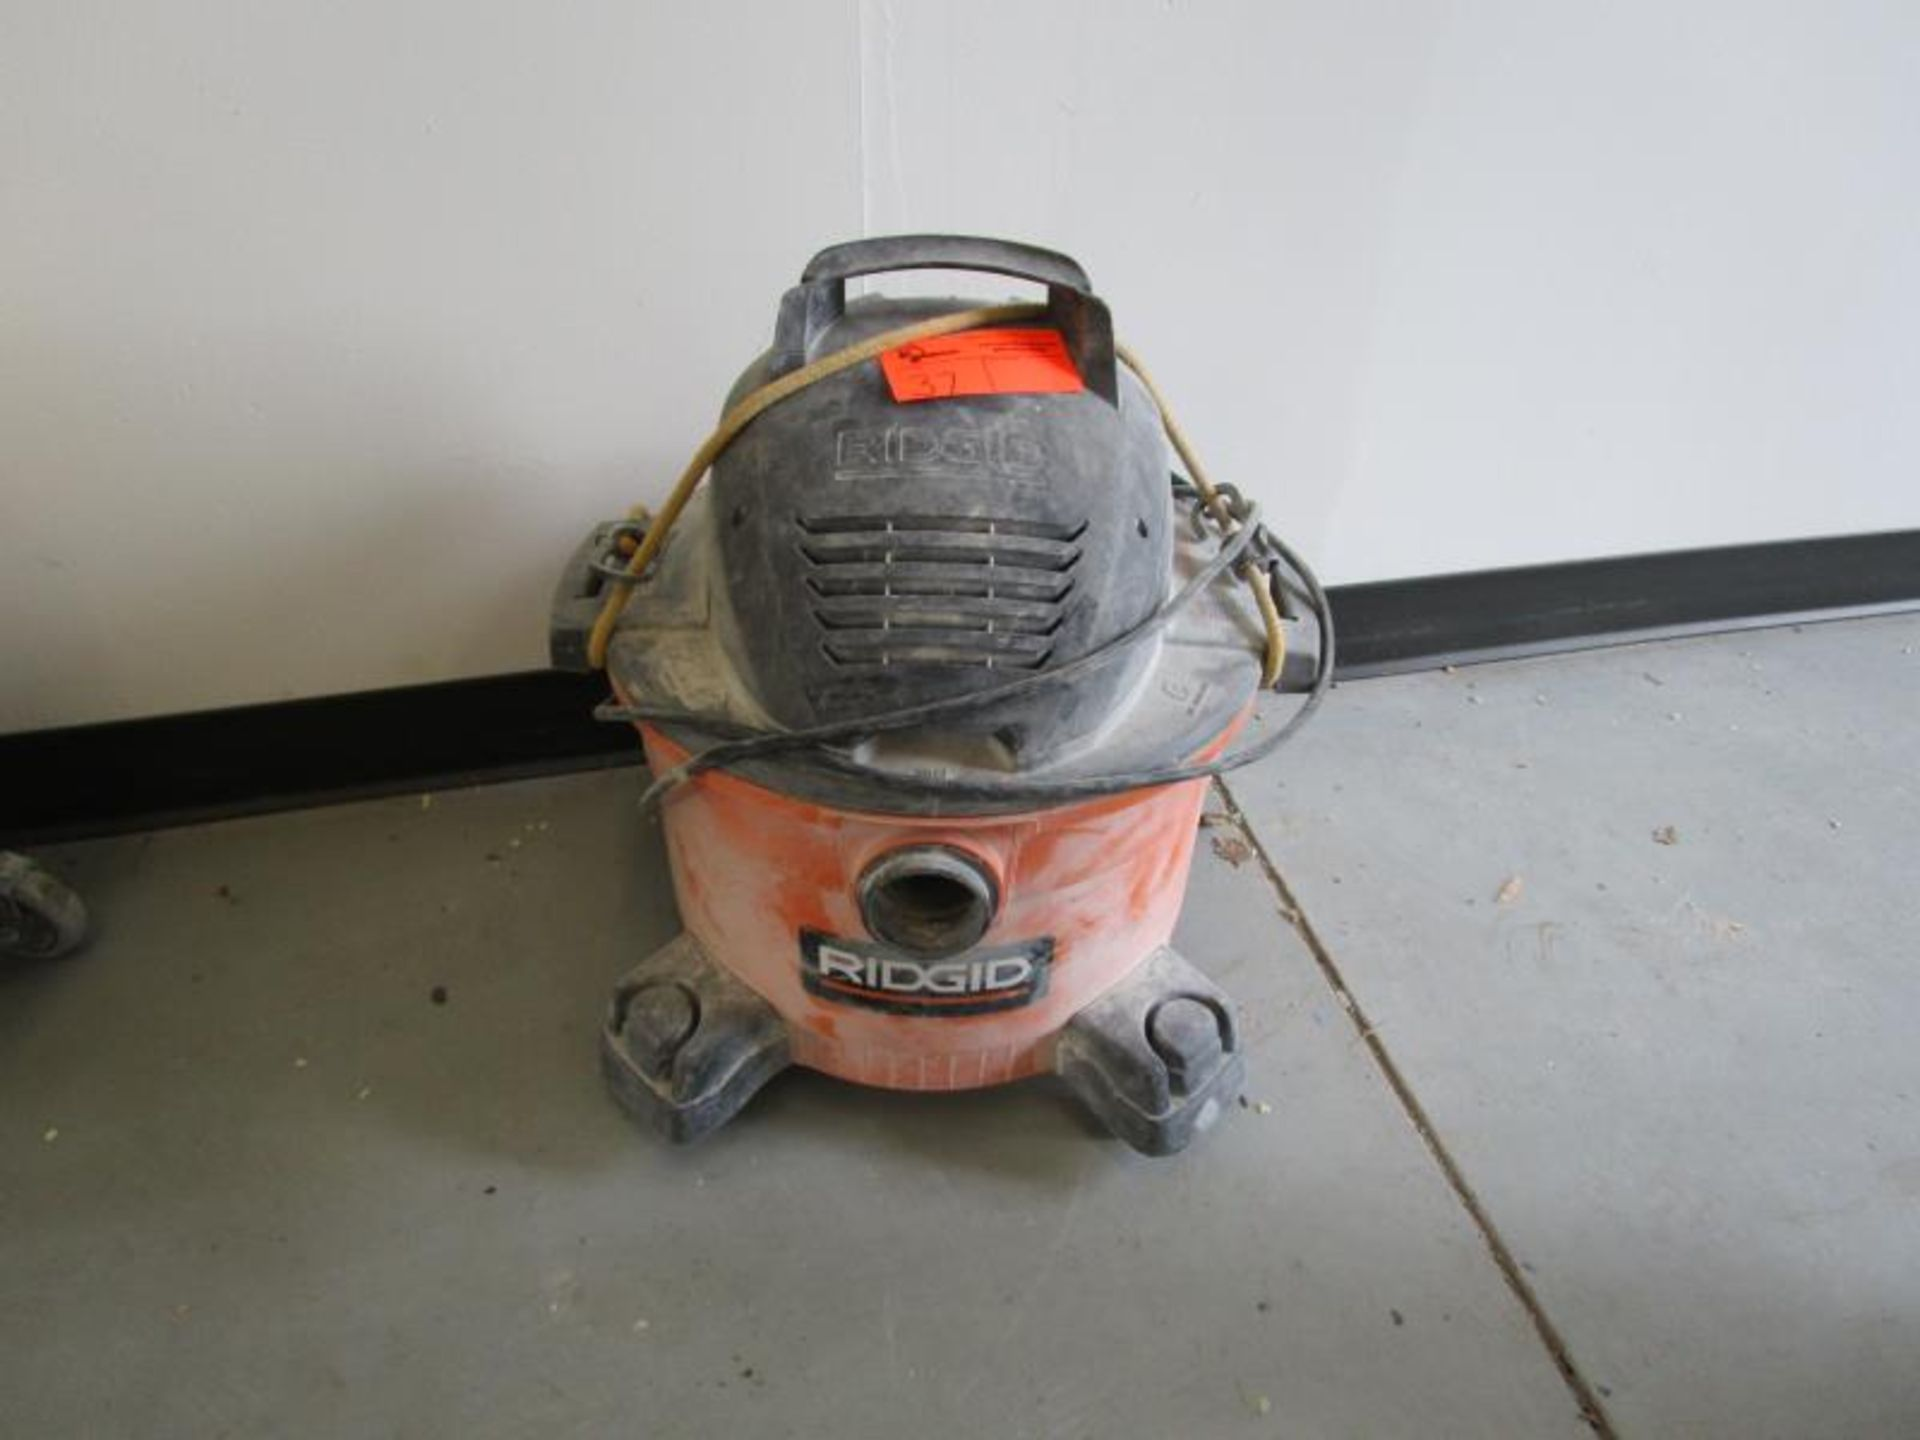 Lot 37 - Rigid Shopvac